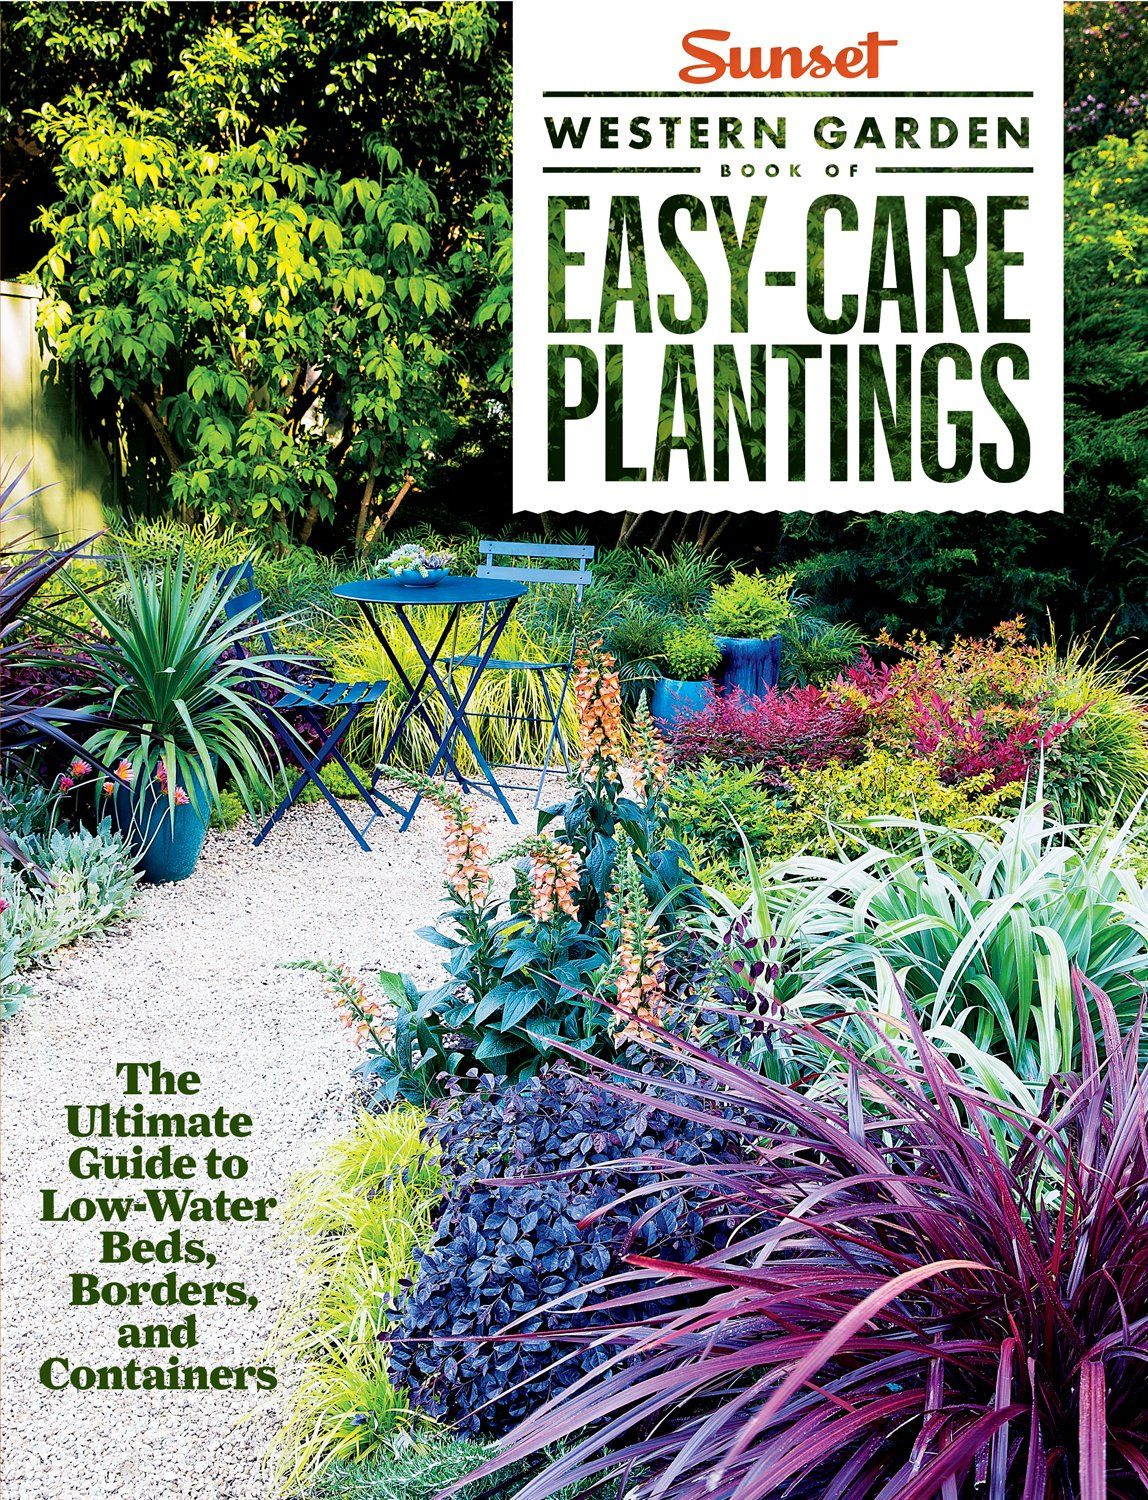 Sunset Western Garden Book Of Easy Care Plantings: The Ultimate Guide To  Low Water Beds, Borders, And Containers